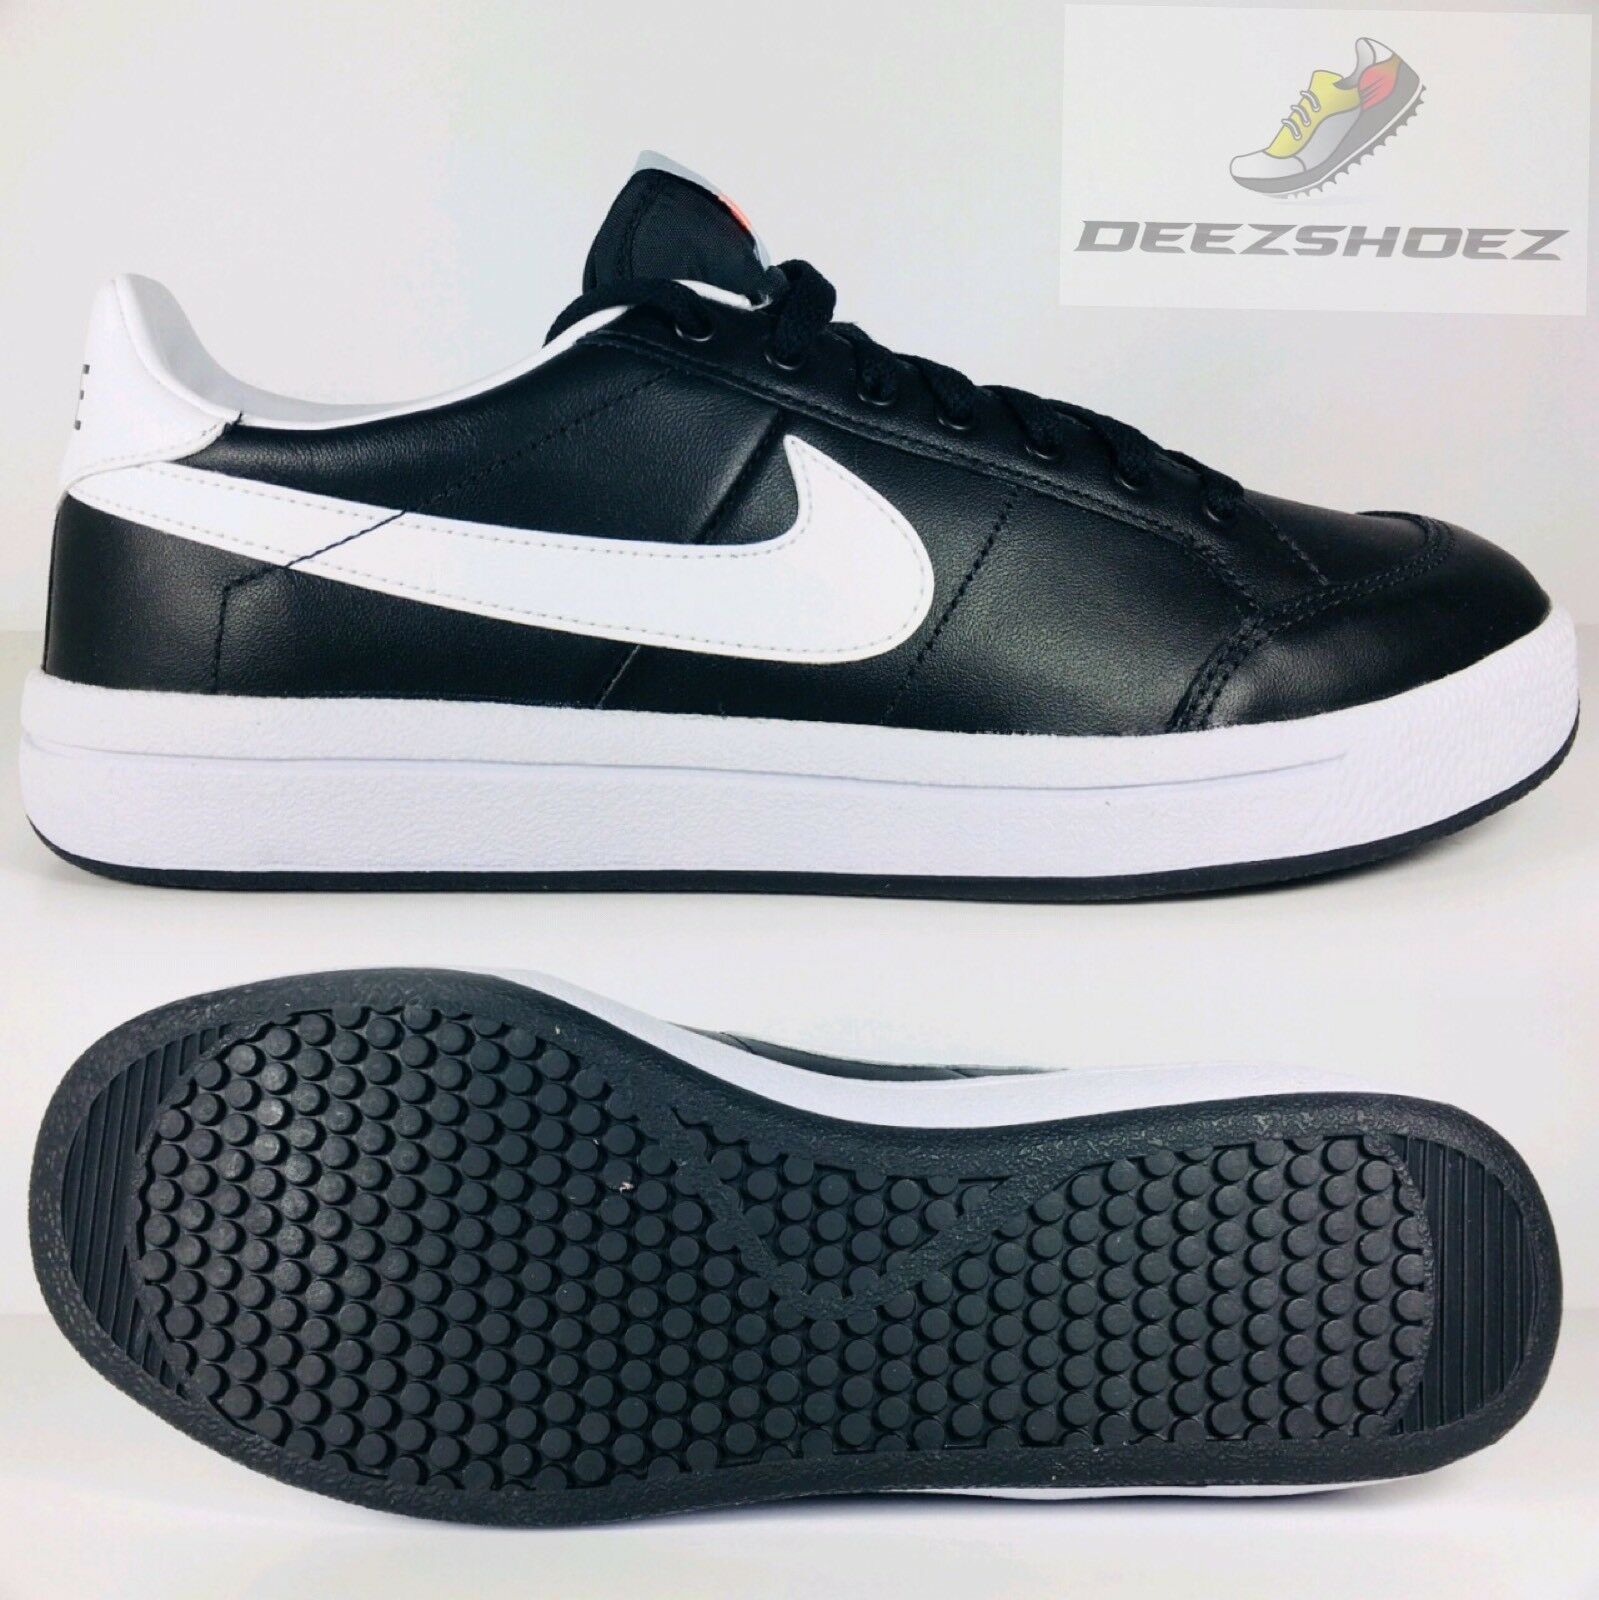 Nike Low Trainers Black White Meadow '16 833462-010 Mens Free Shipping Seasonal price cuts, discount benefits